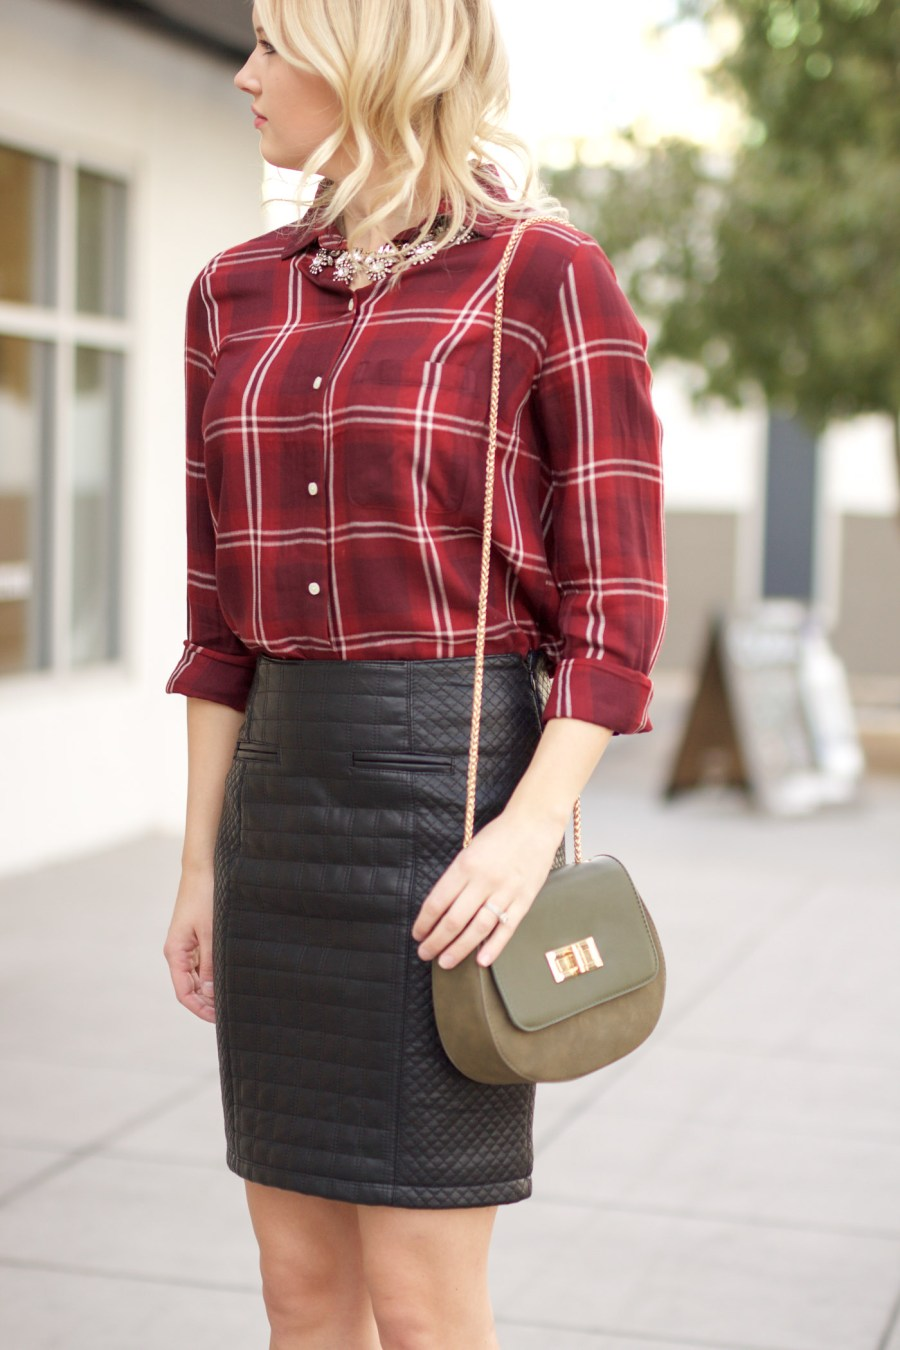 Thanksgiving outfit idea, leather pencil skirt, fashion blog, Pinterest outfit, statement necklace, Treats and Trends, Jamie Kamber